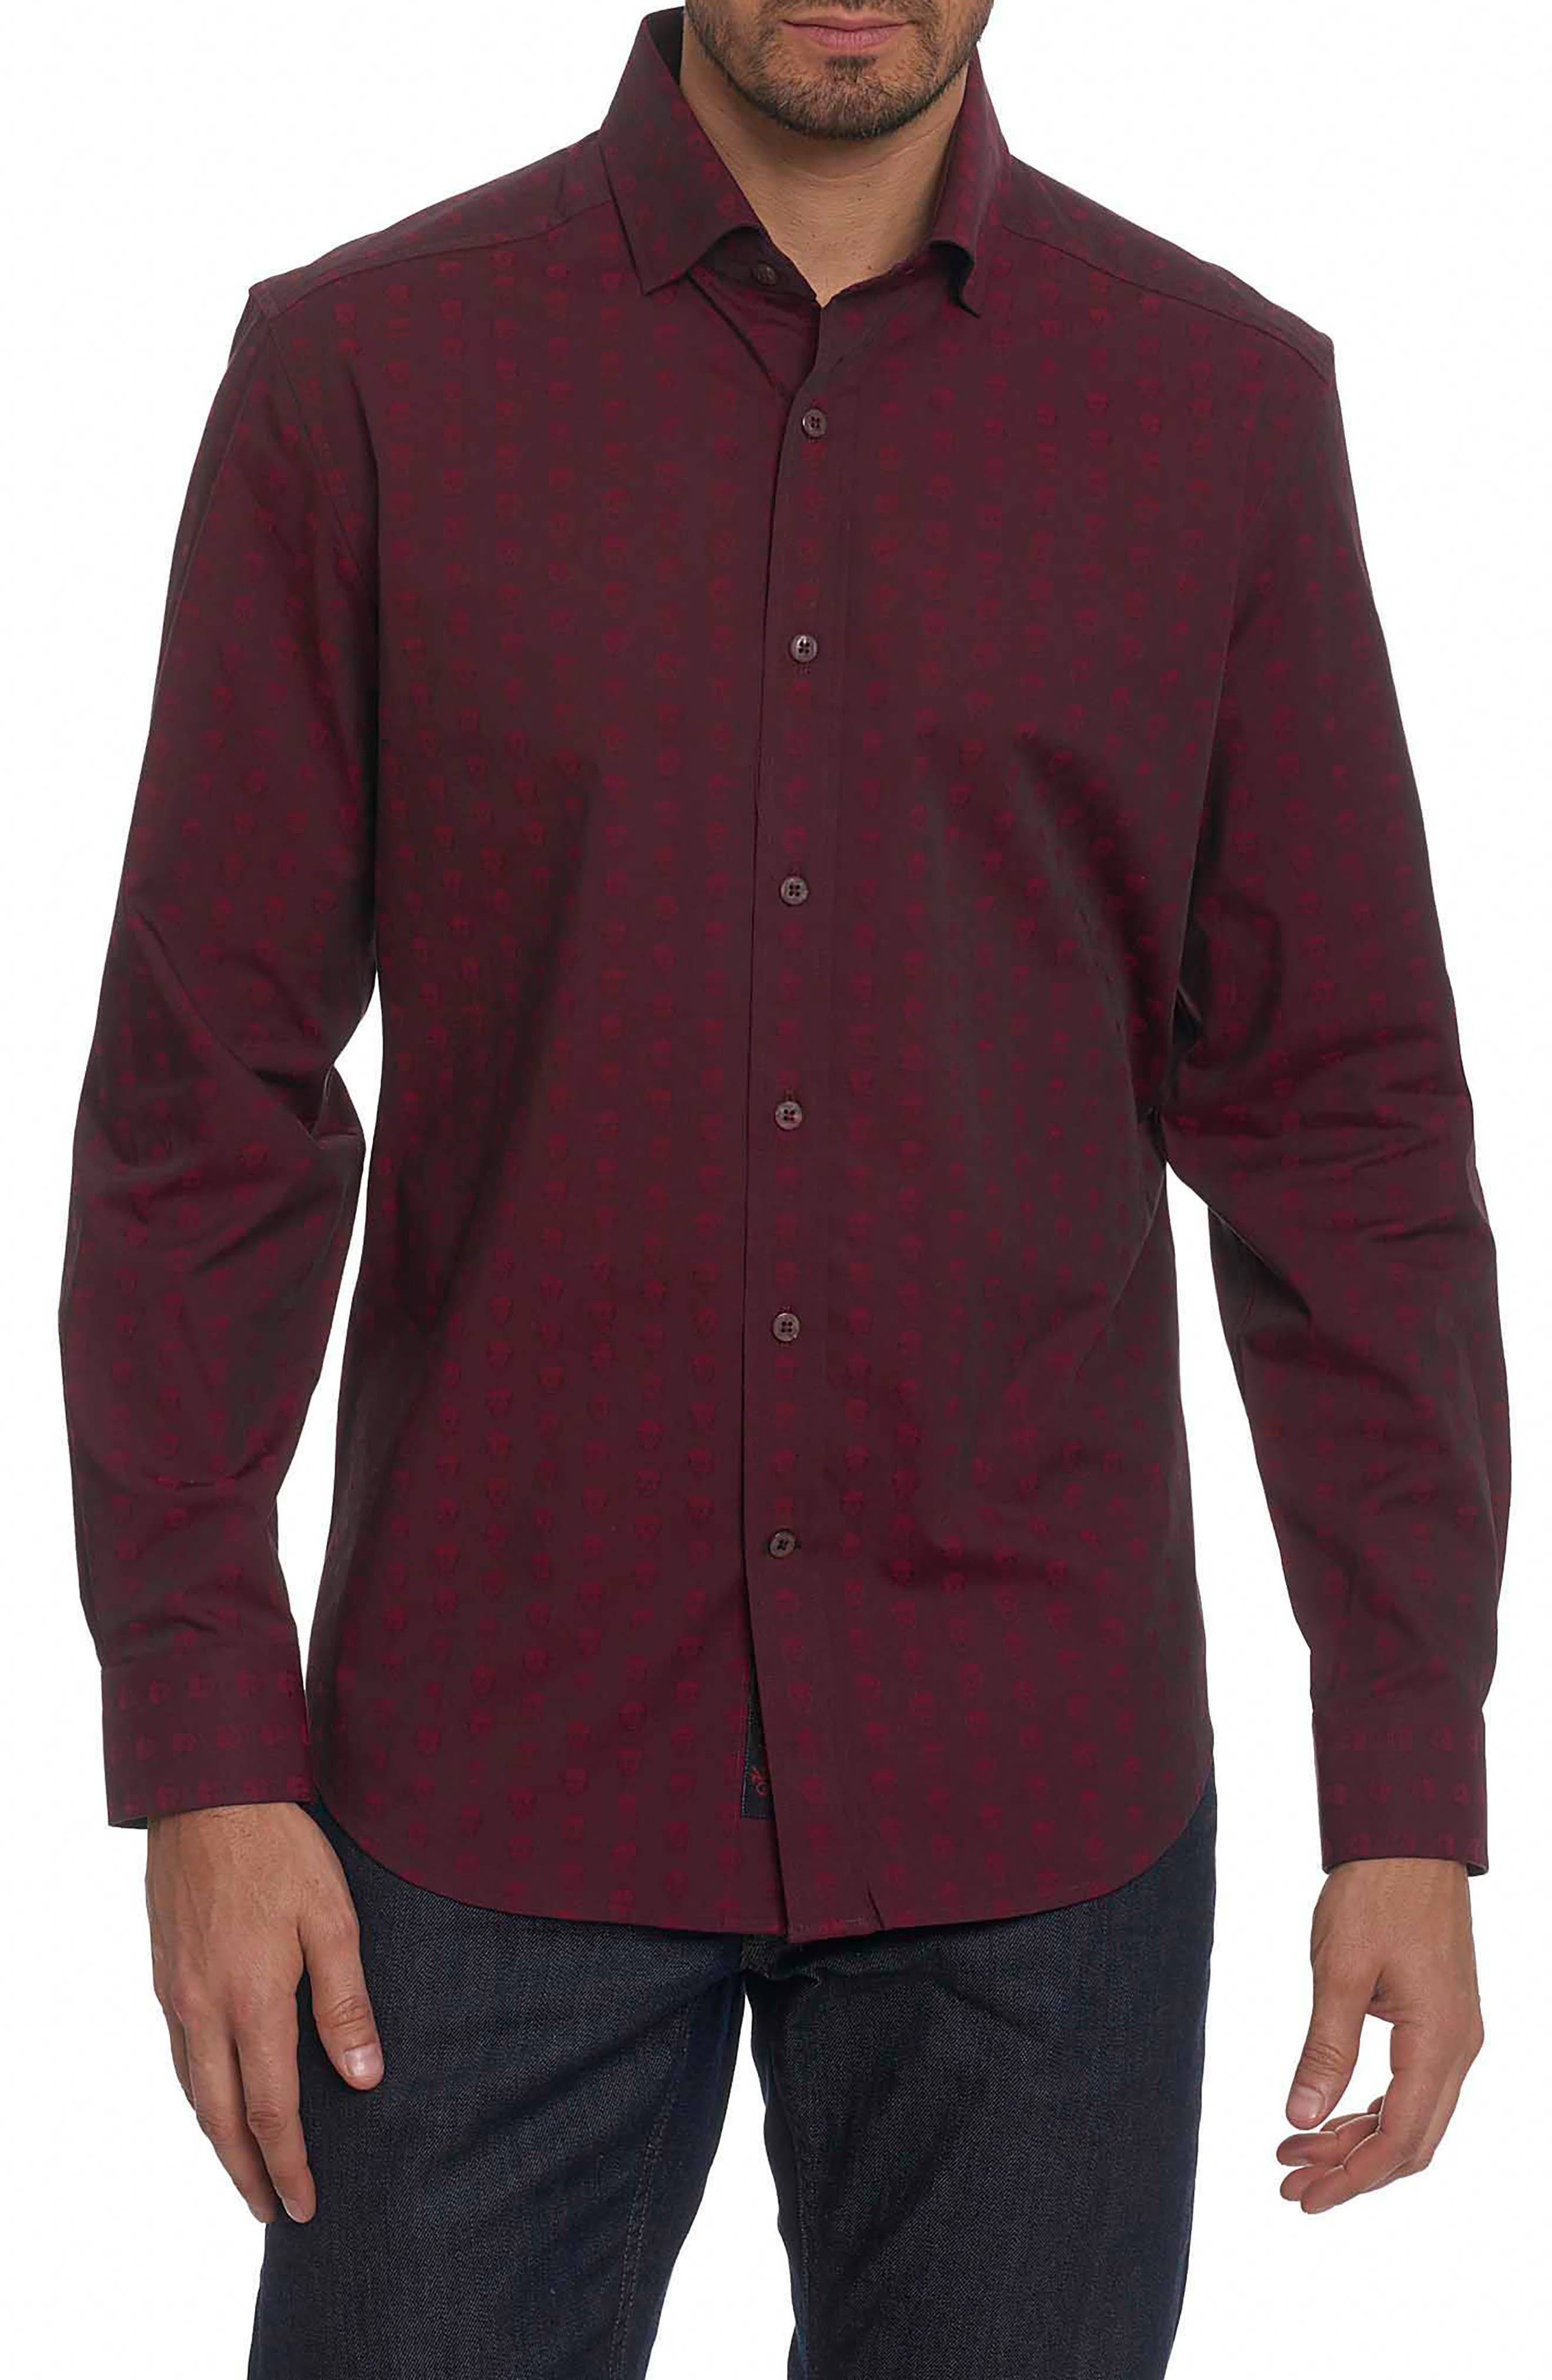 Deven Tailored Fit Sport Shirt,                             Main thumbnail 1, color,                             Red